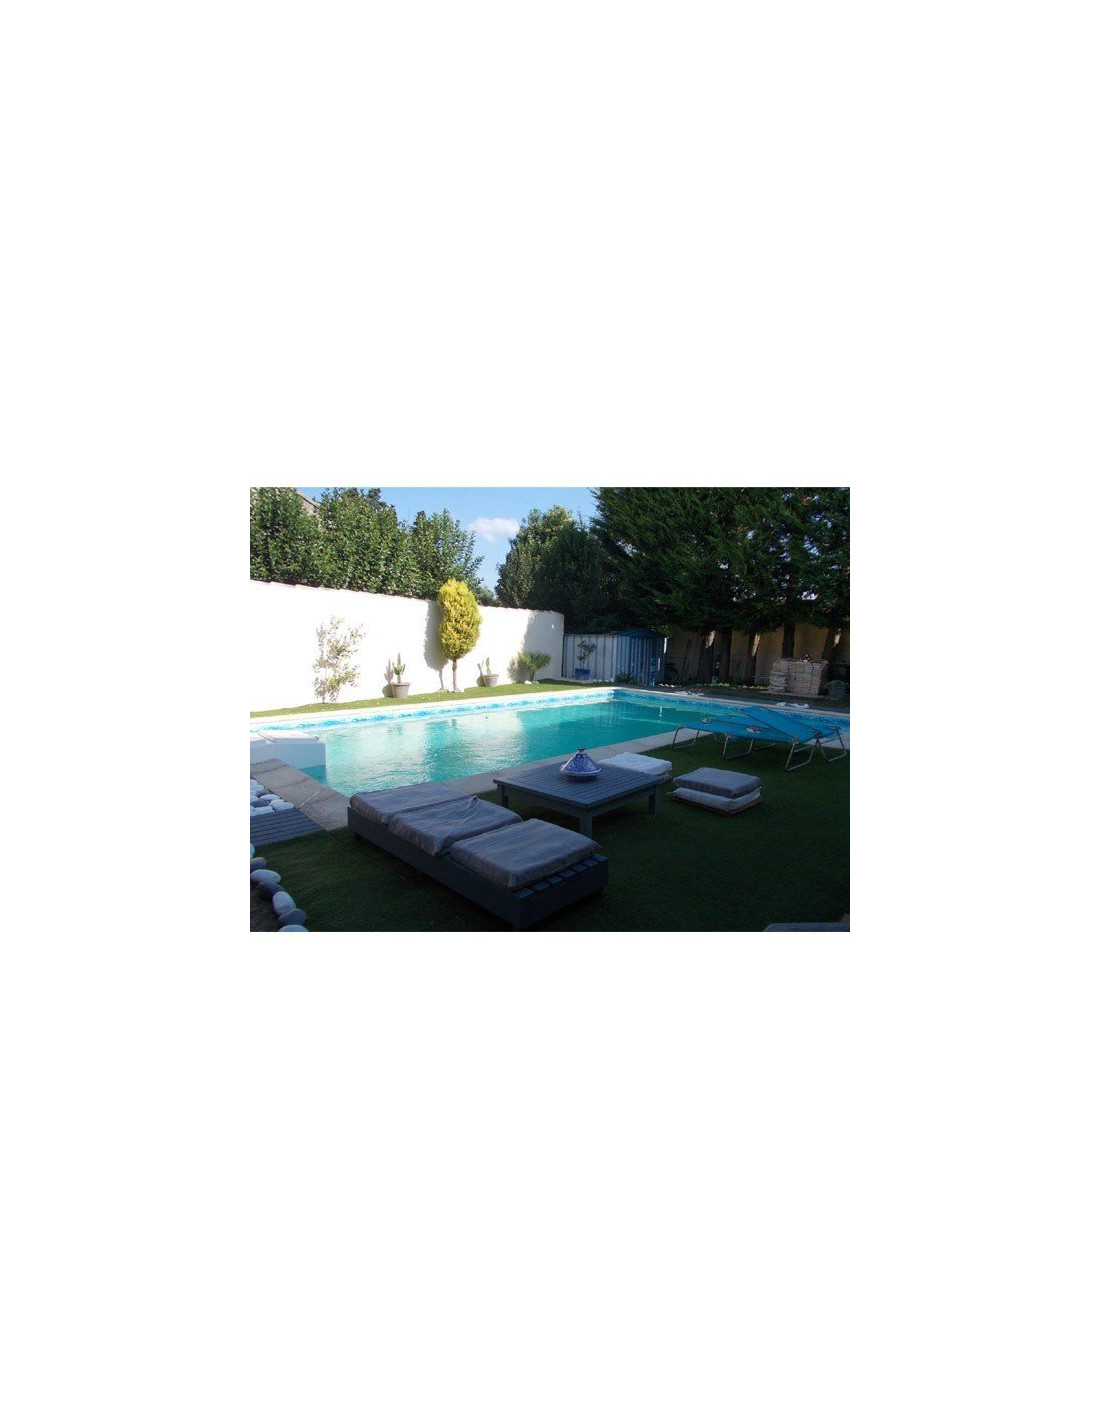 Kit piscine enterr e modulo for Piscine en kit enterree